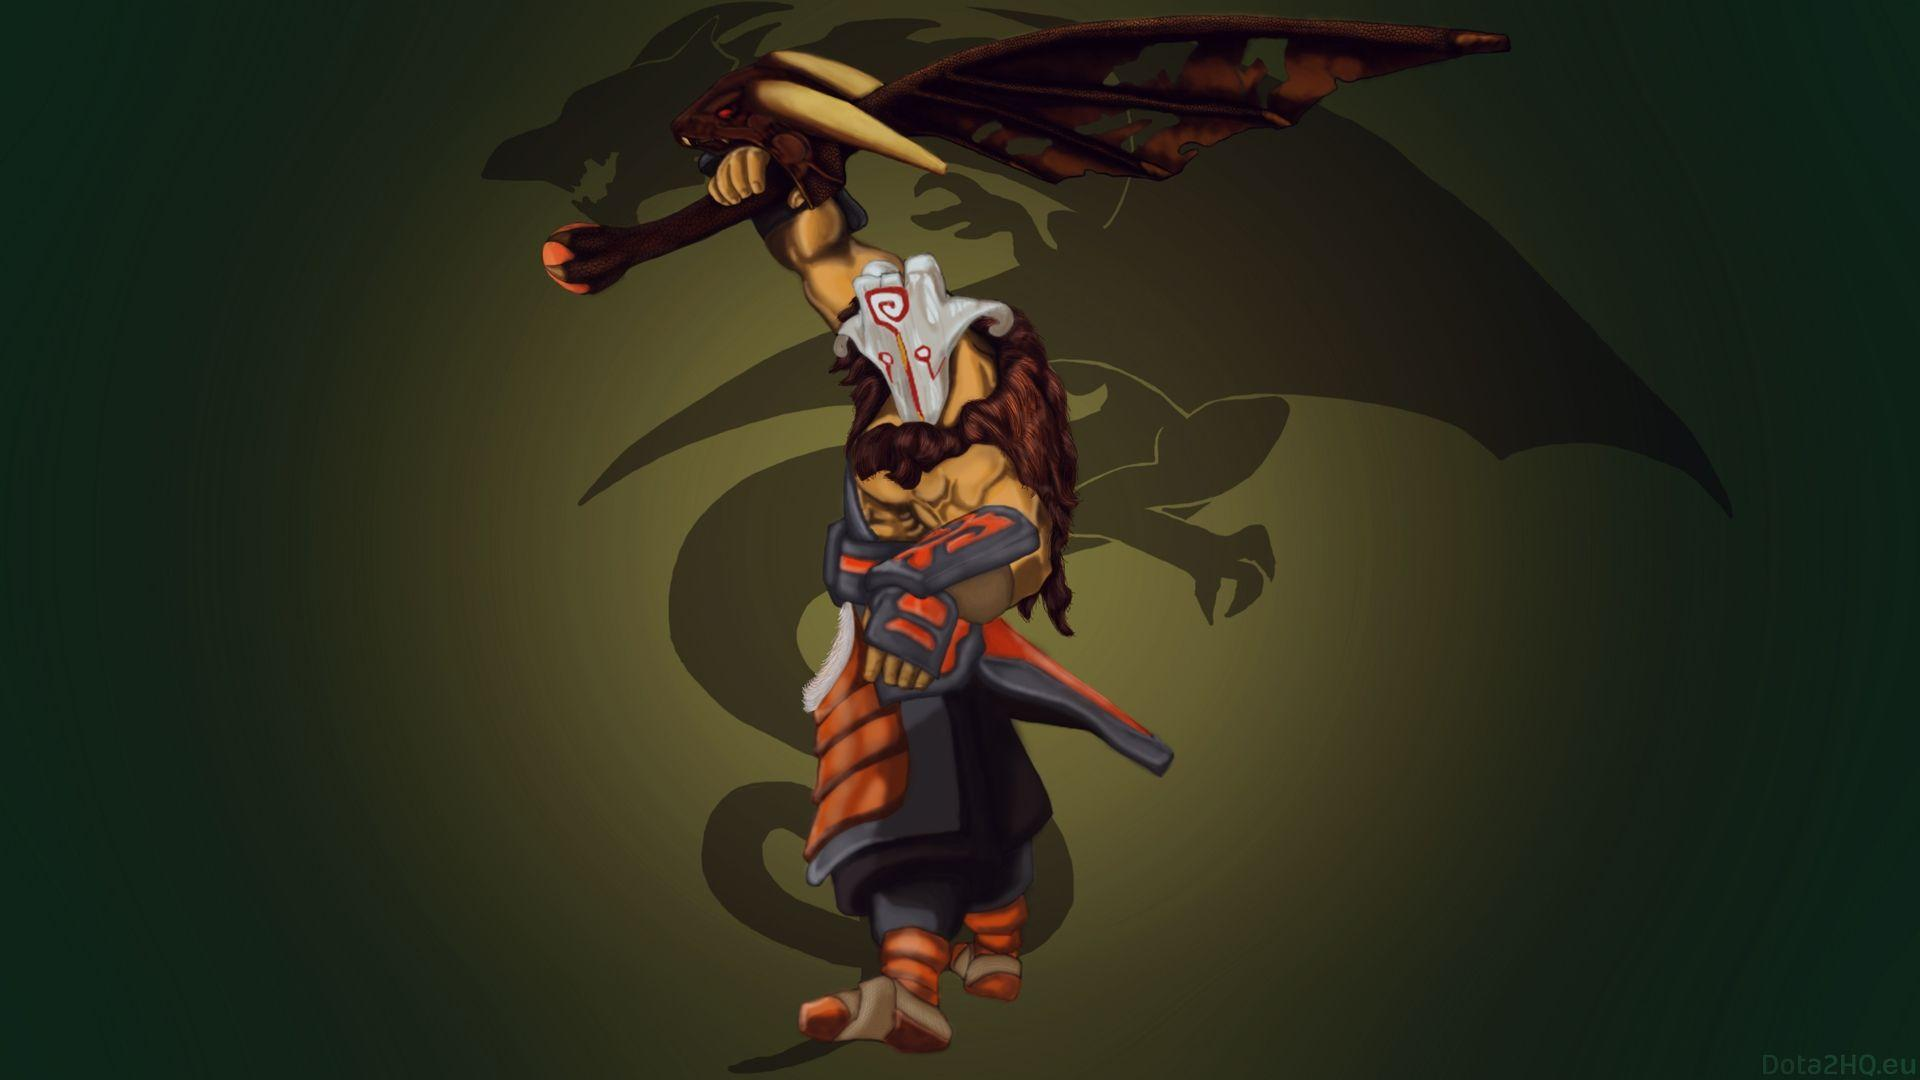 Juggernaut with Dragon Sharp Wing Blade - DOTA 2 Wallpapers